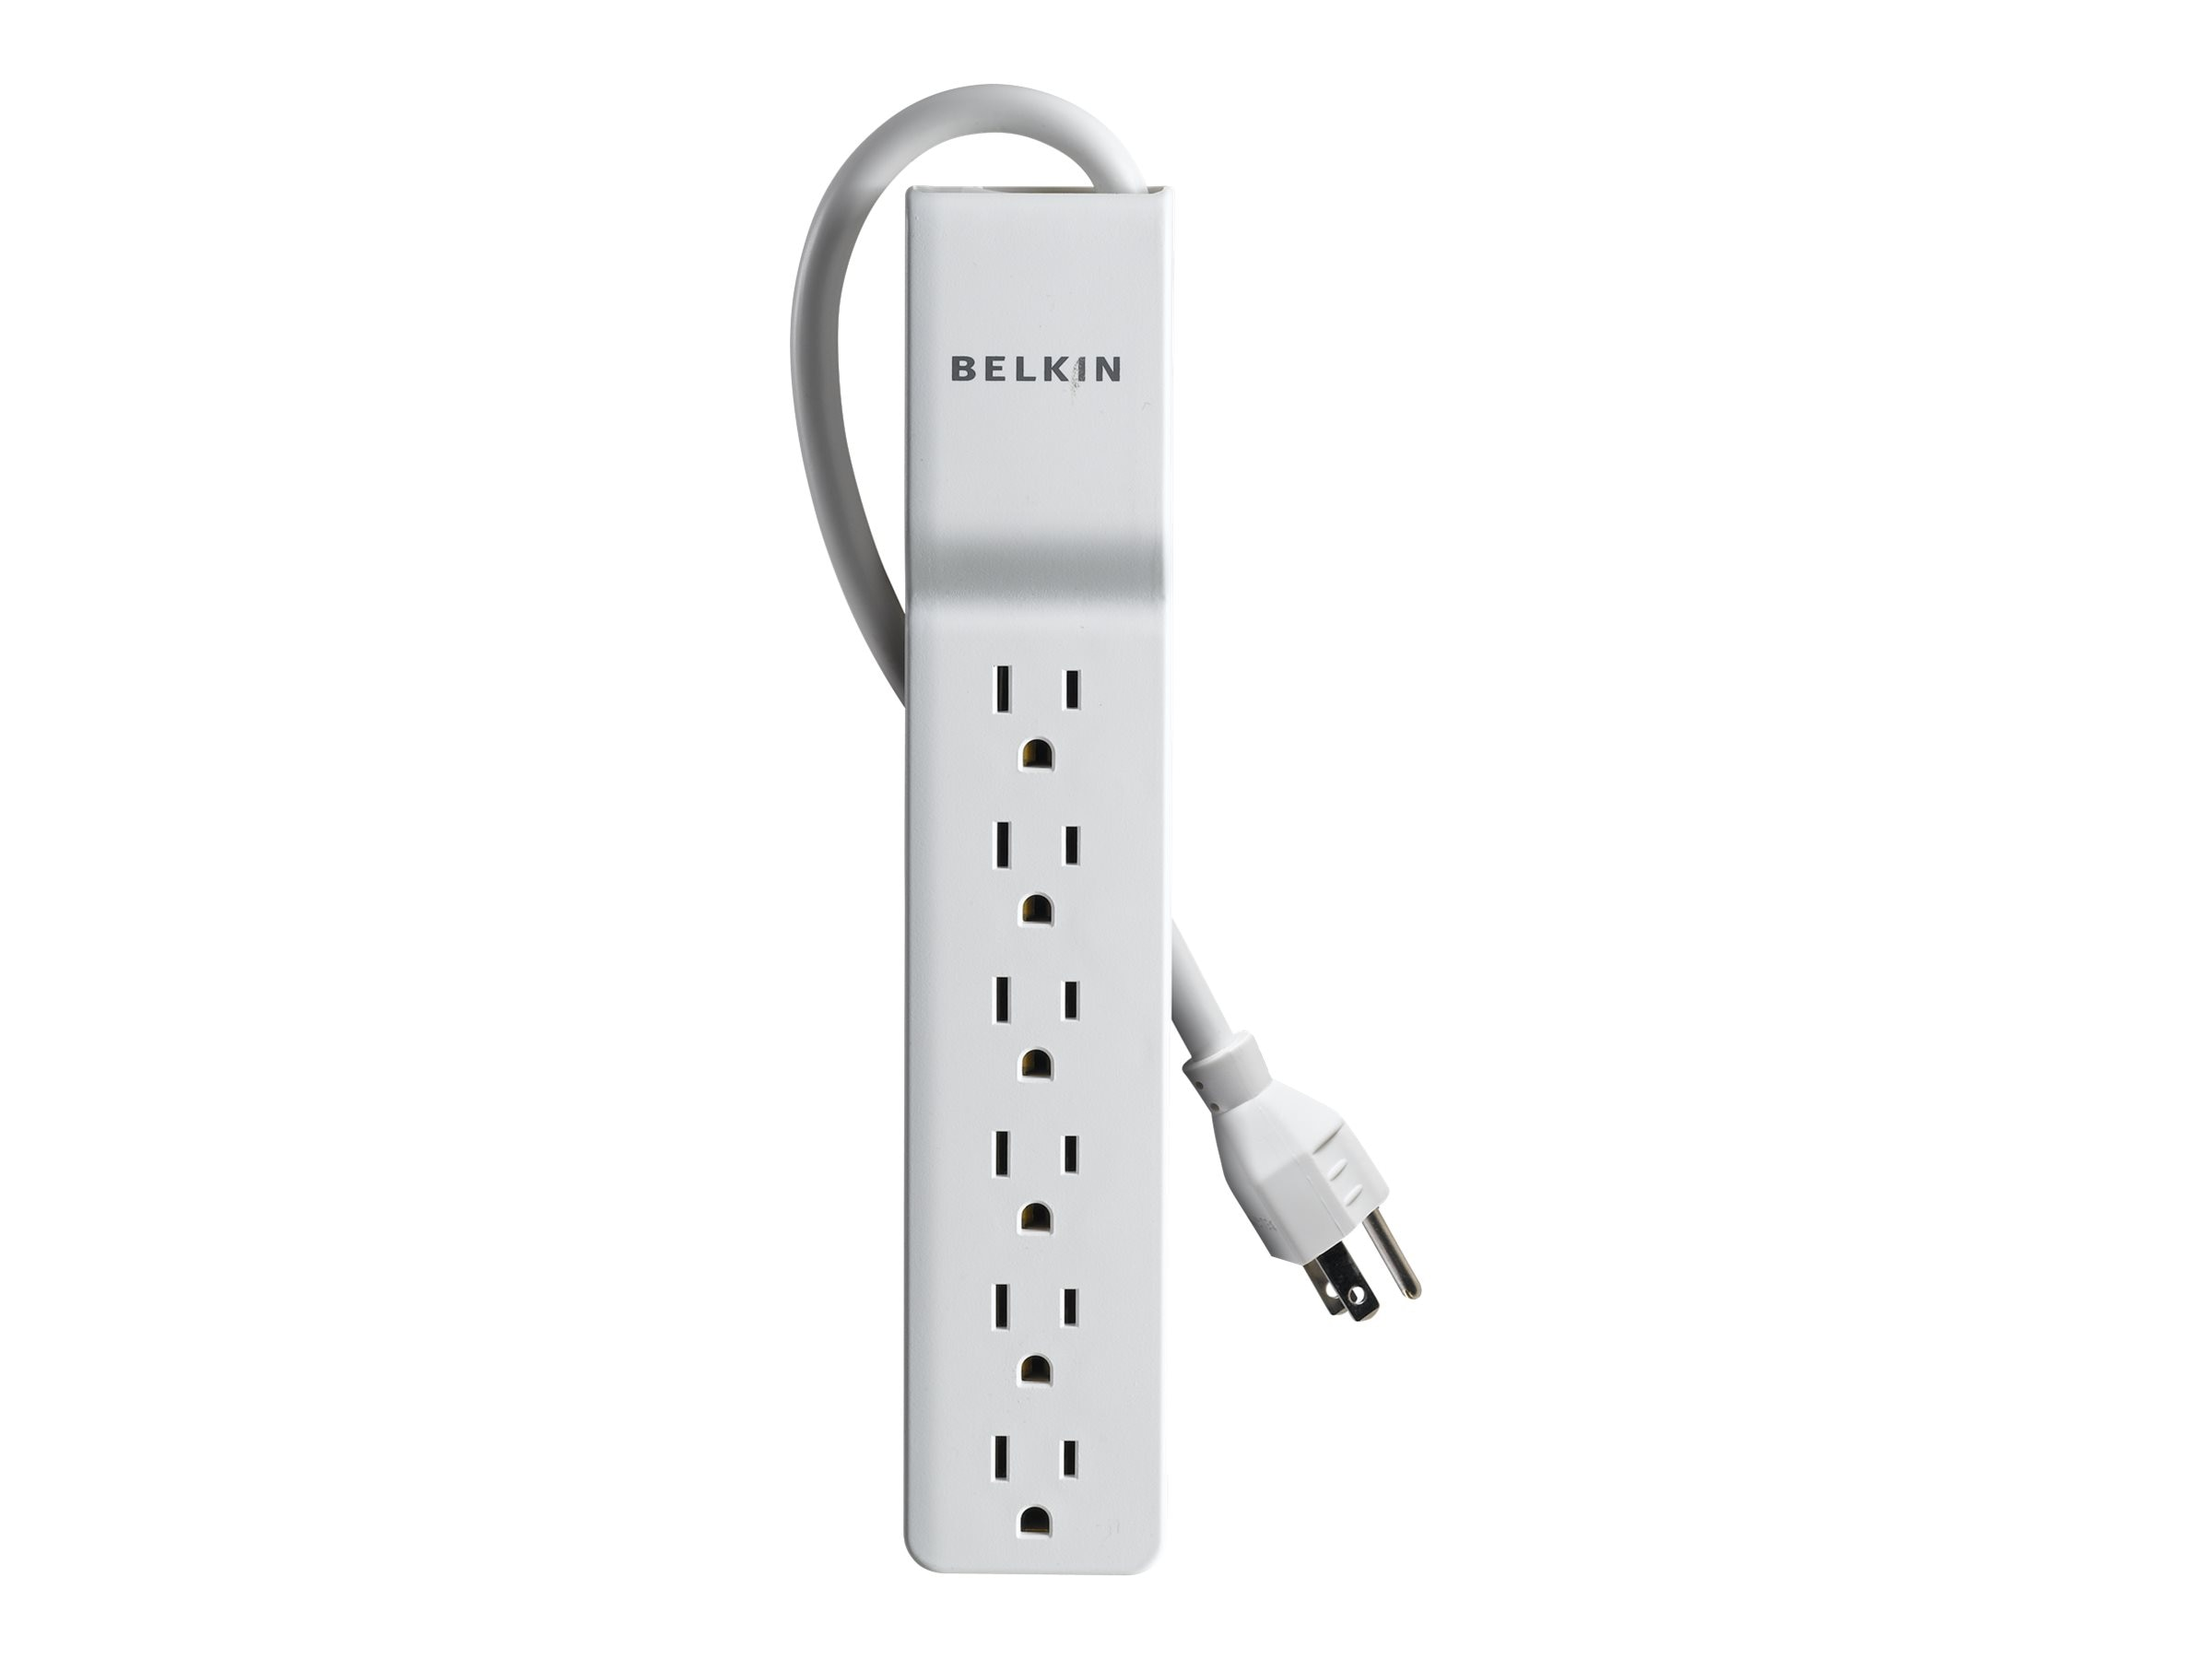 Belkin Home Office Series Surge Protector, 720 Joules, 6-Outlets, 4ft Cord, BE106000-04